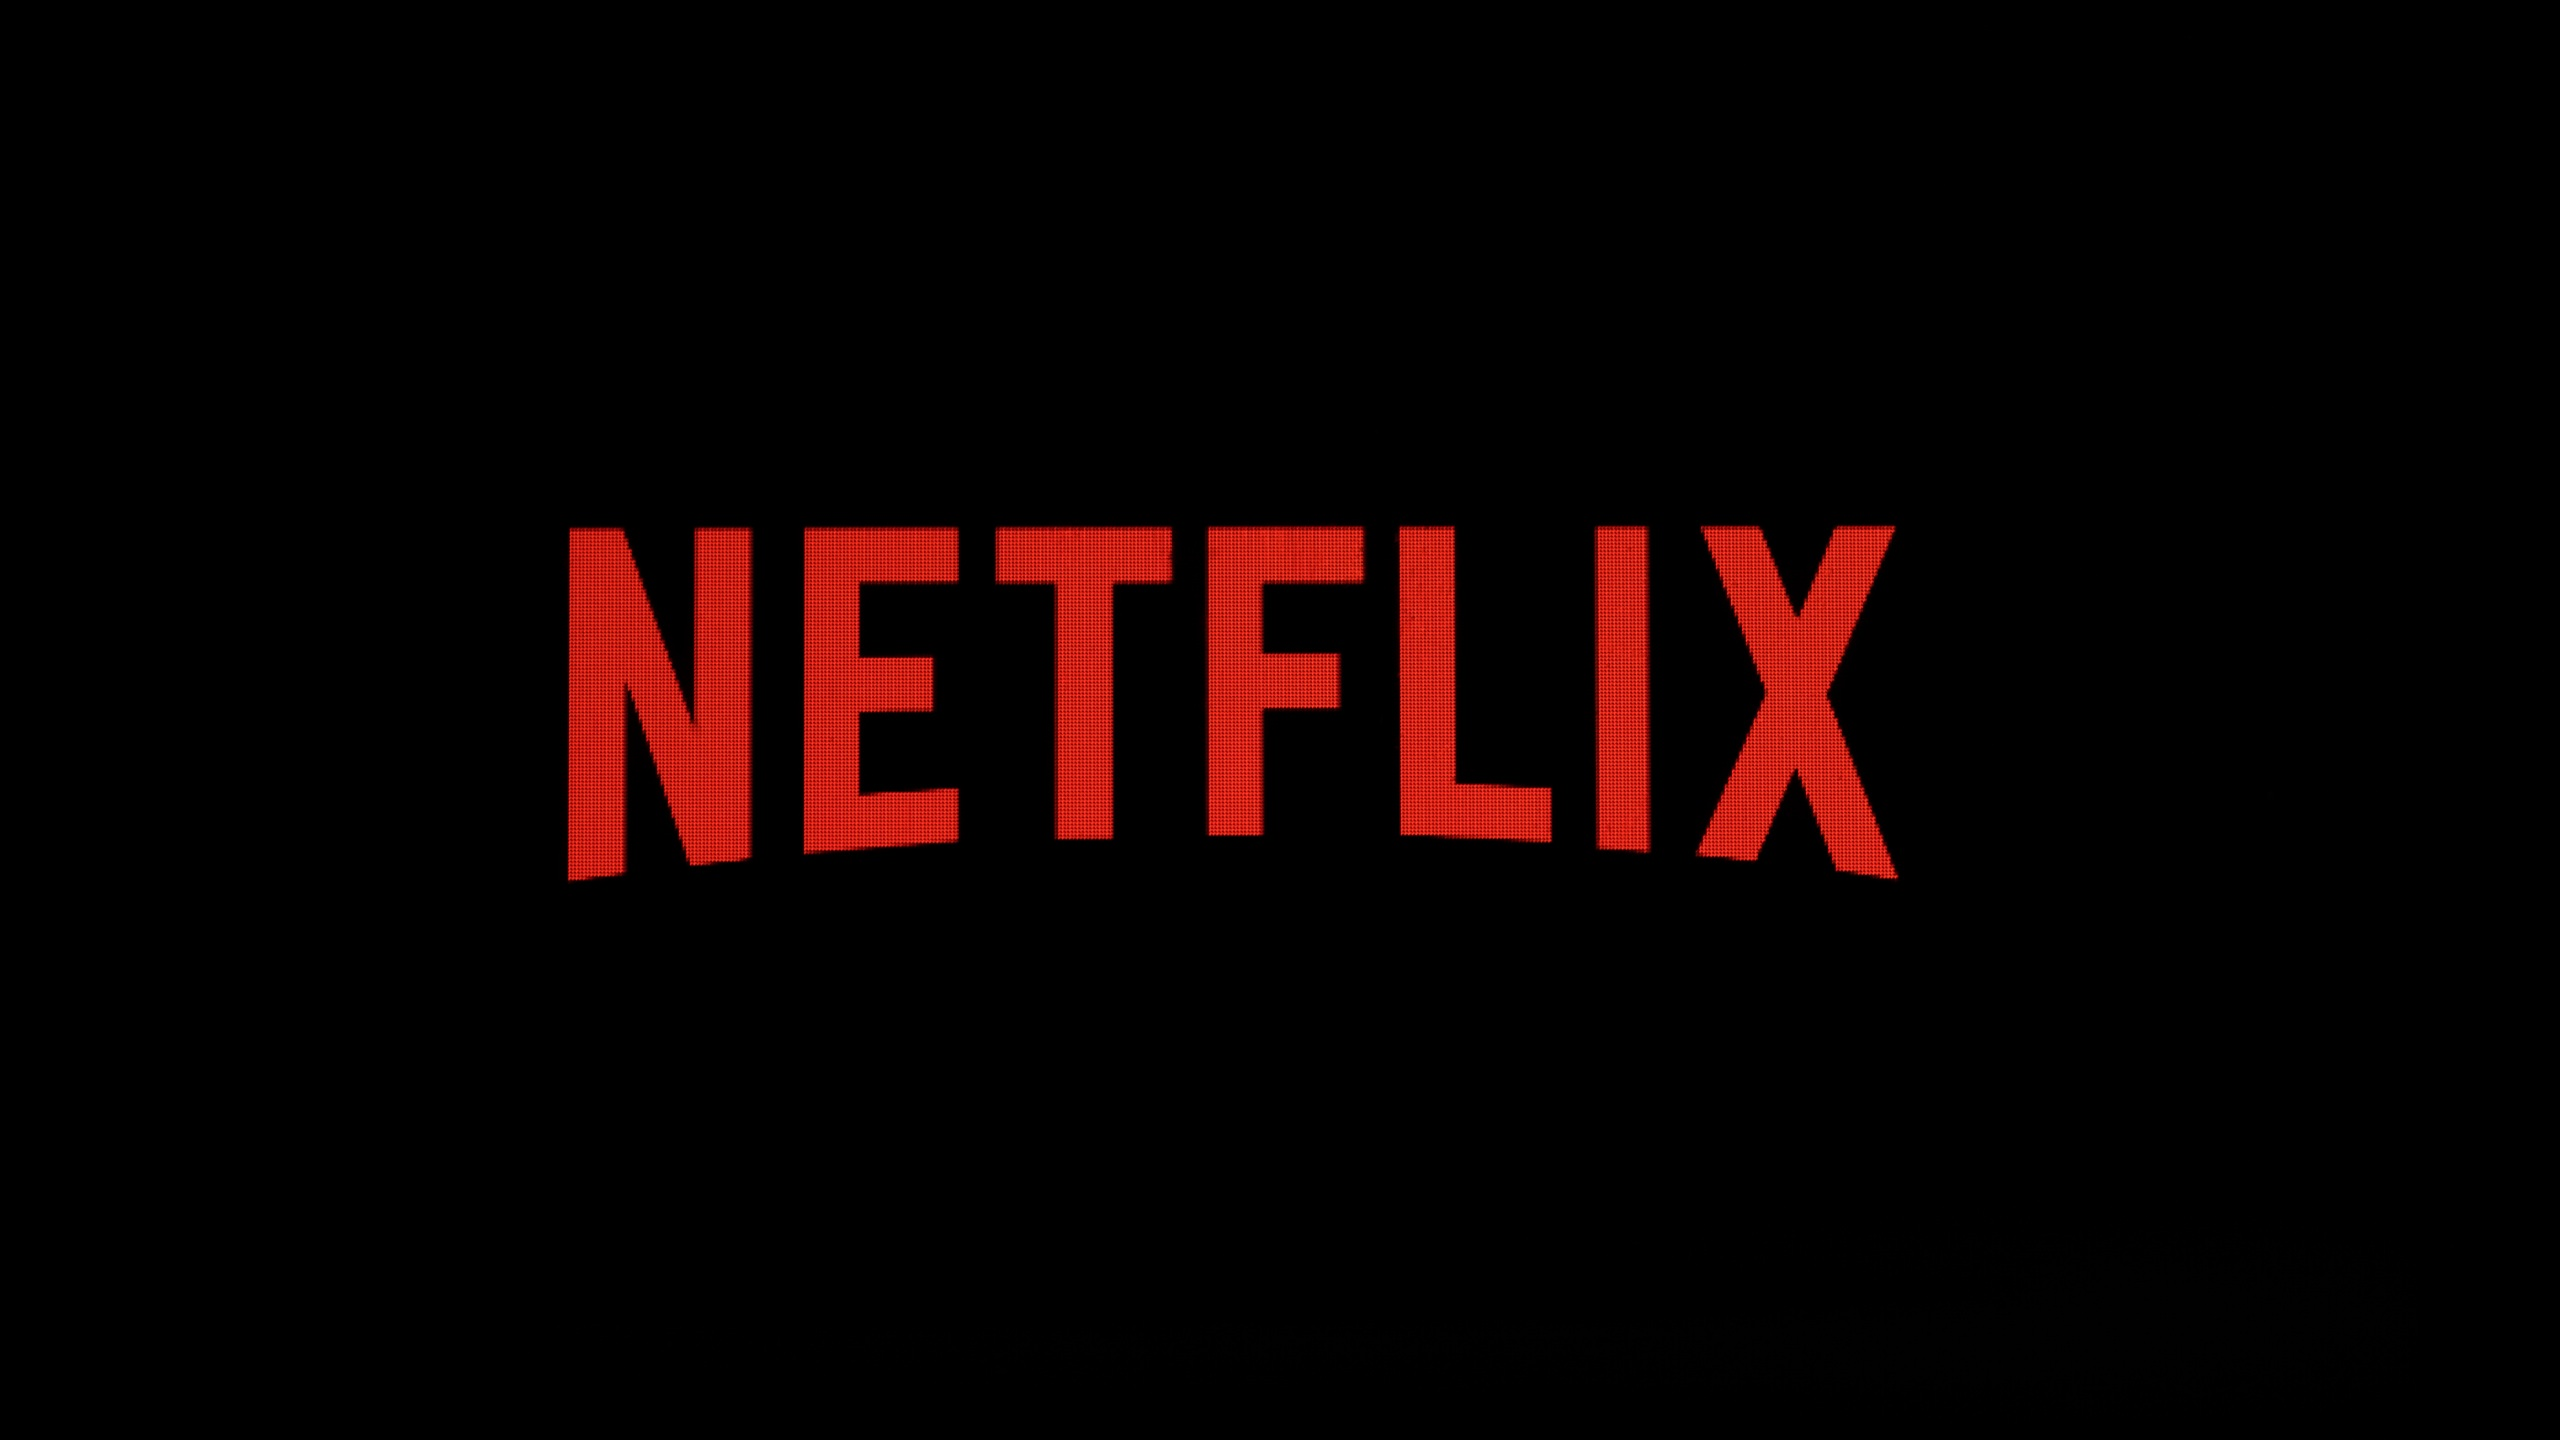 Casting Call: Extras needed for Netflix's 'OBX' filming on Kiawah Island